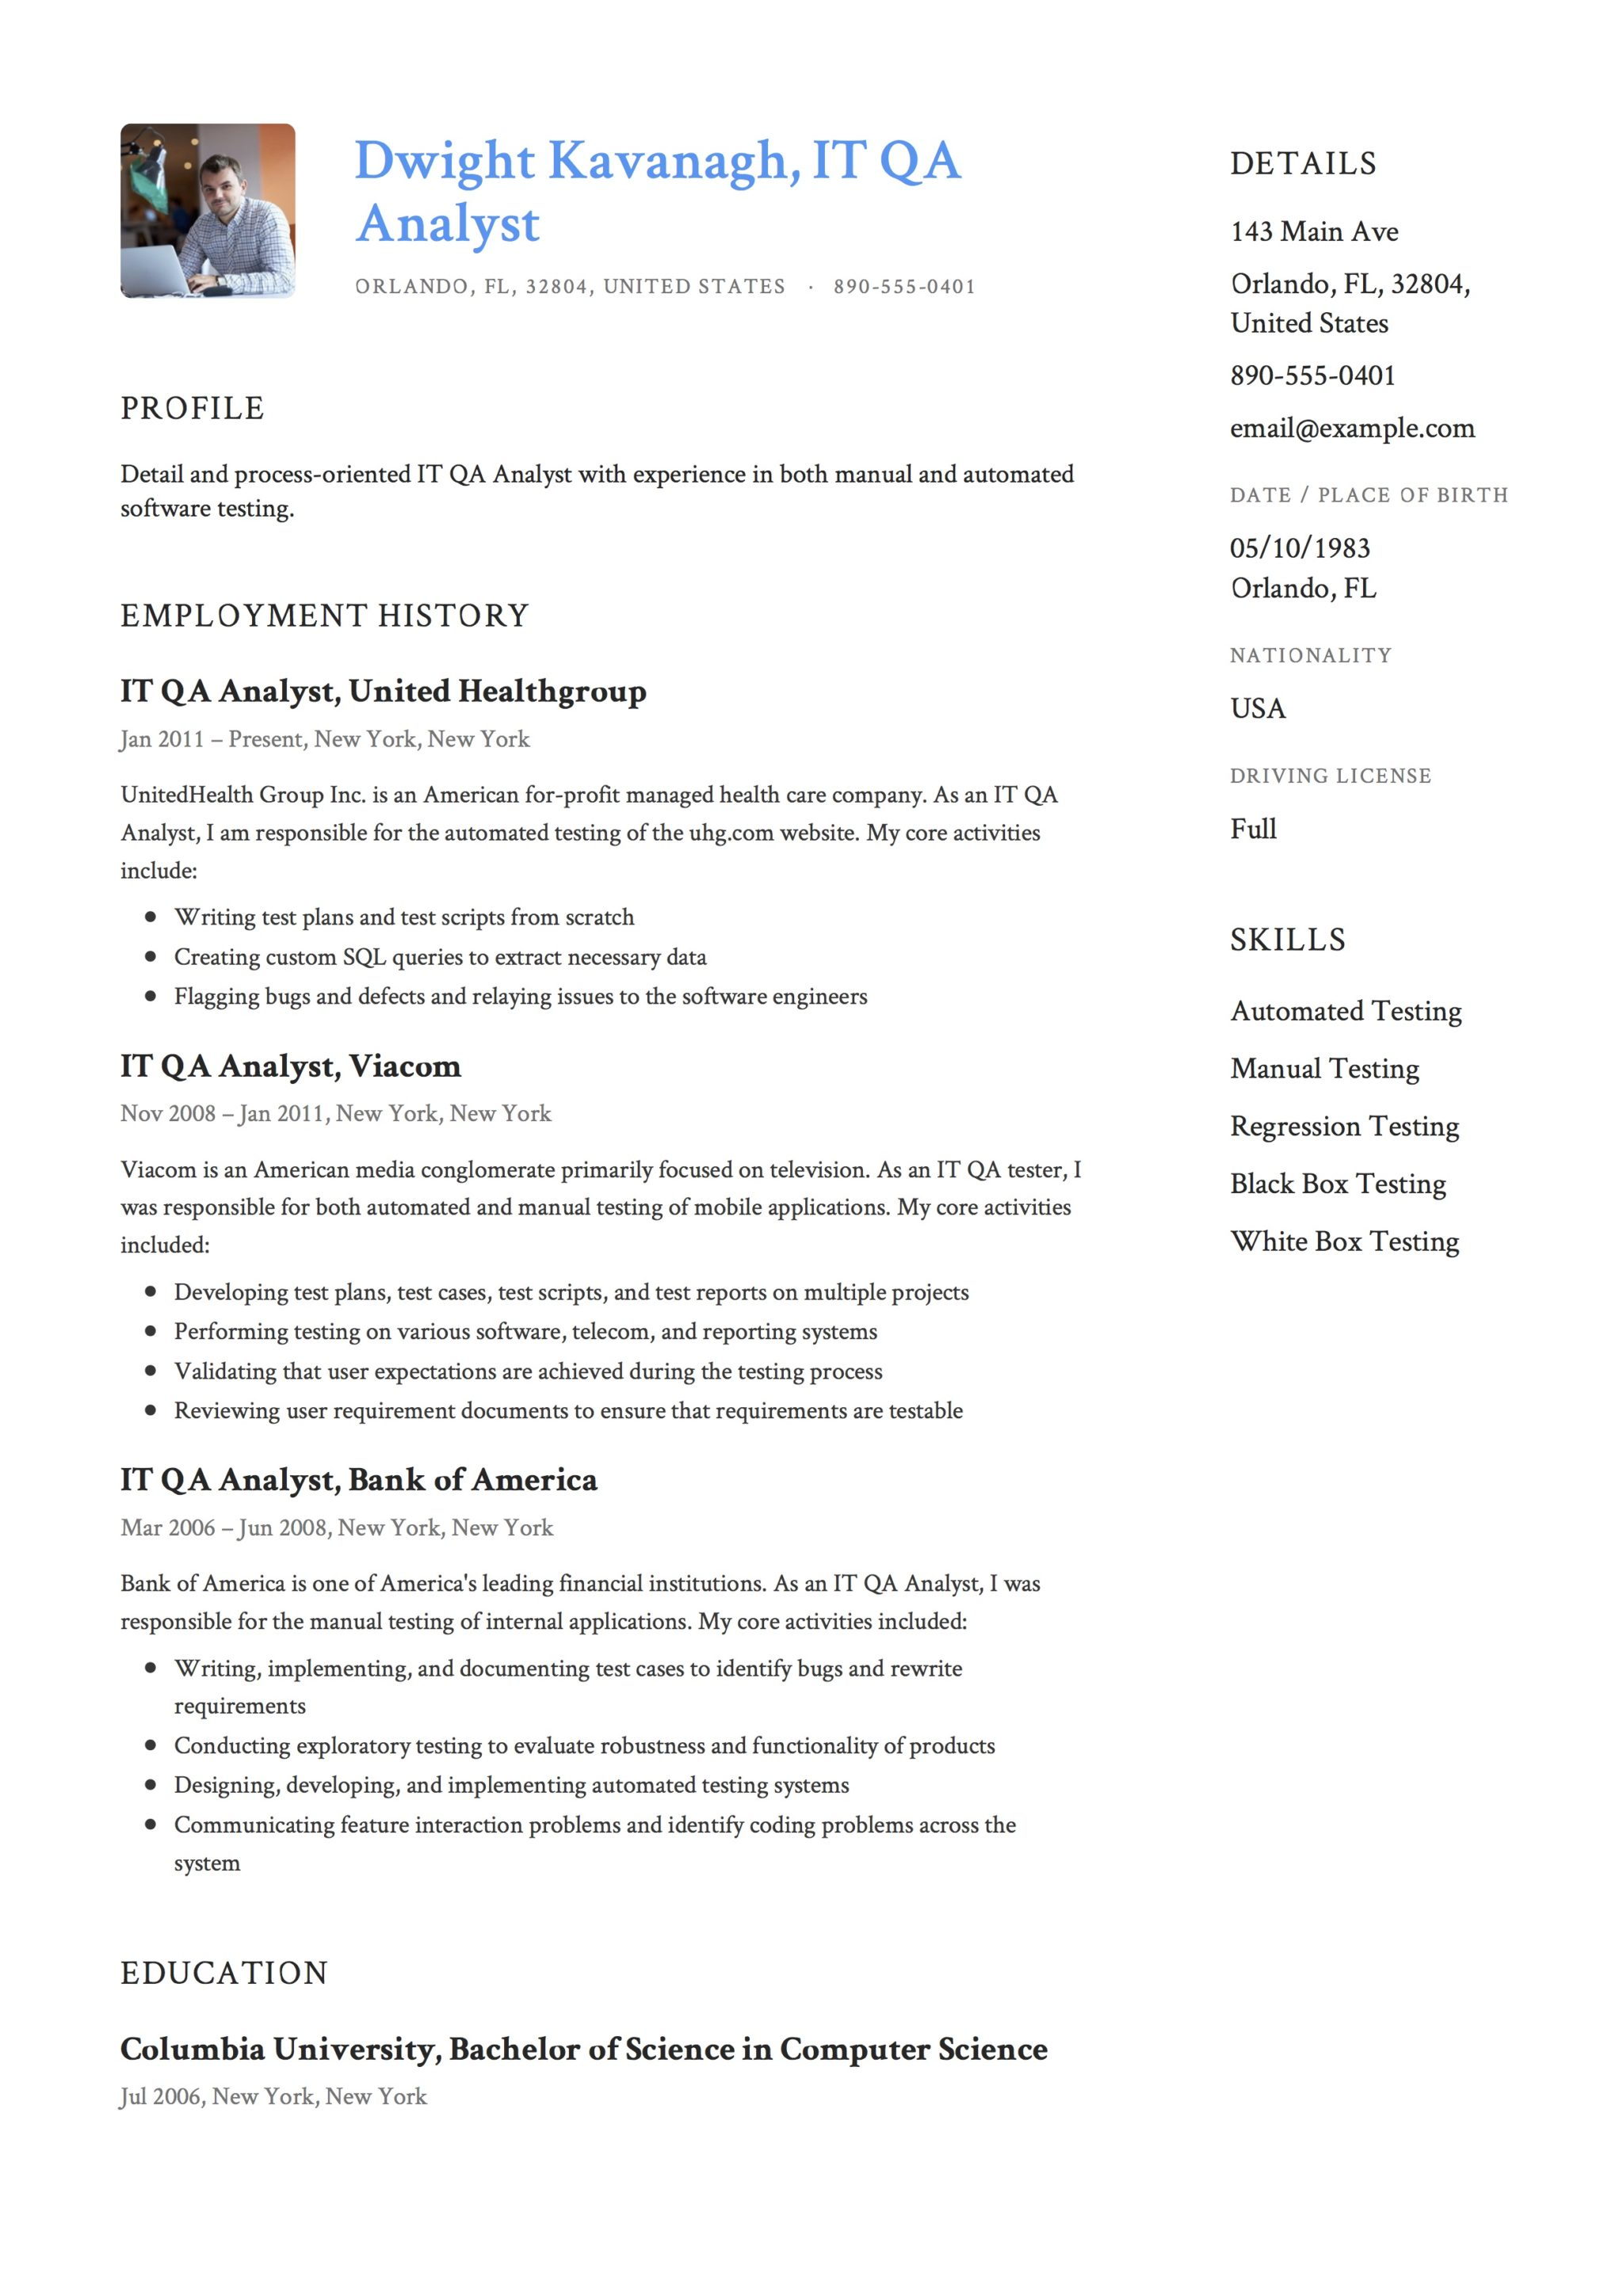 it qa analyst resume guide templates pdf software testing samples for years experience Resume Software Testing Resume Samples For 5 Years Experience